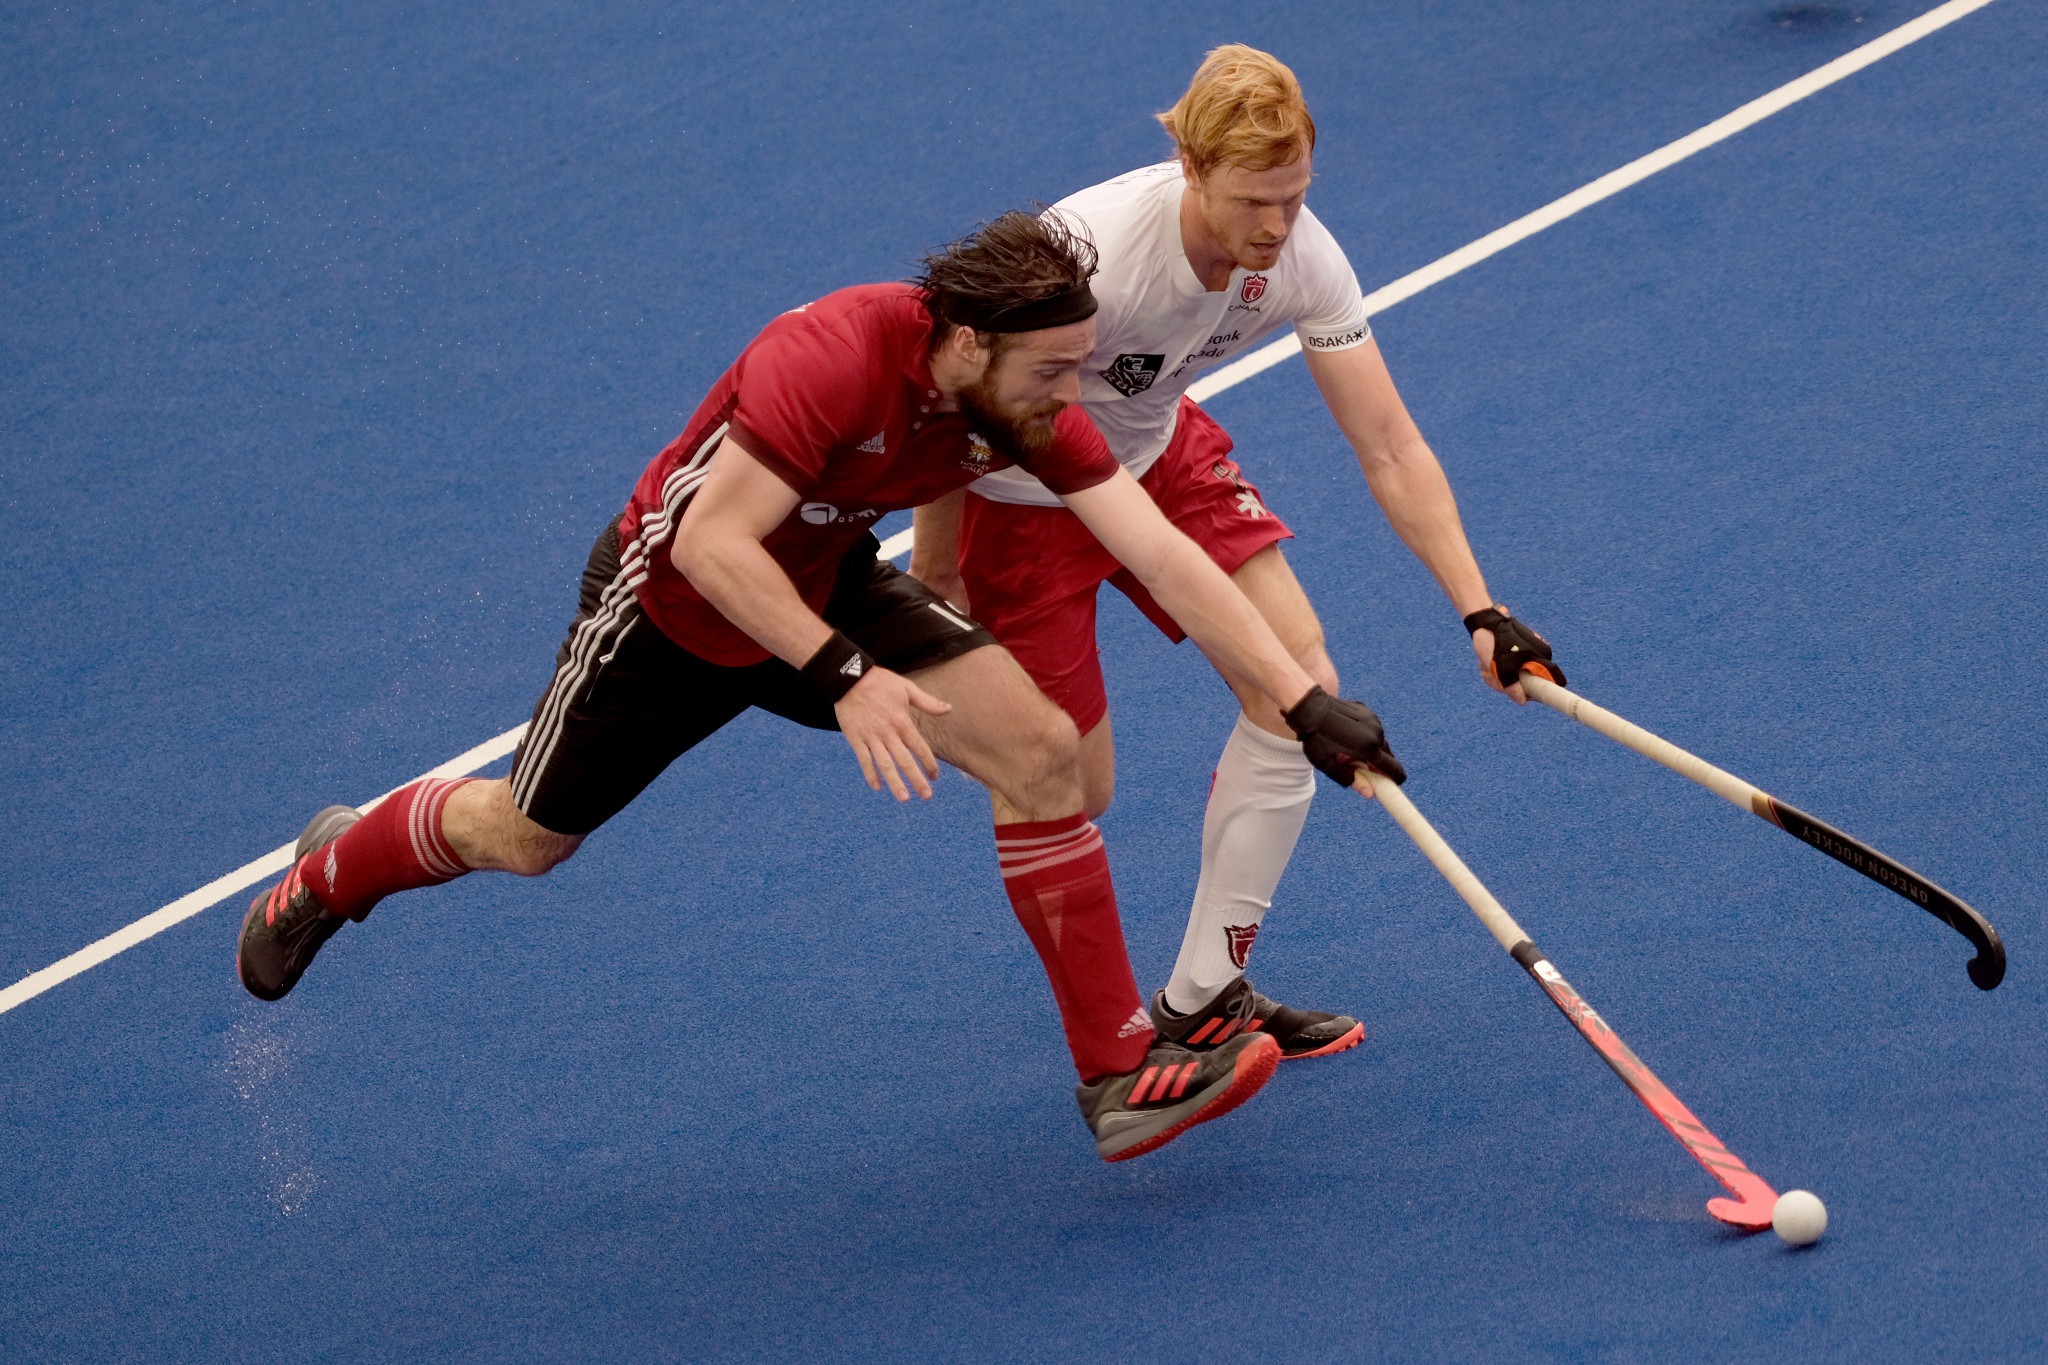 Wales surprise Canada on opening day of FIH Series Finals in Kuala Lumpur